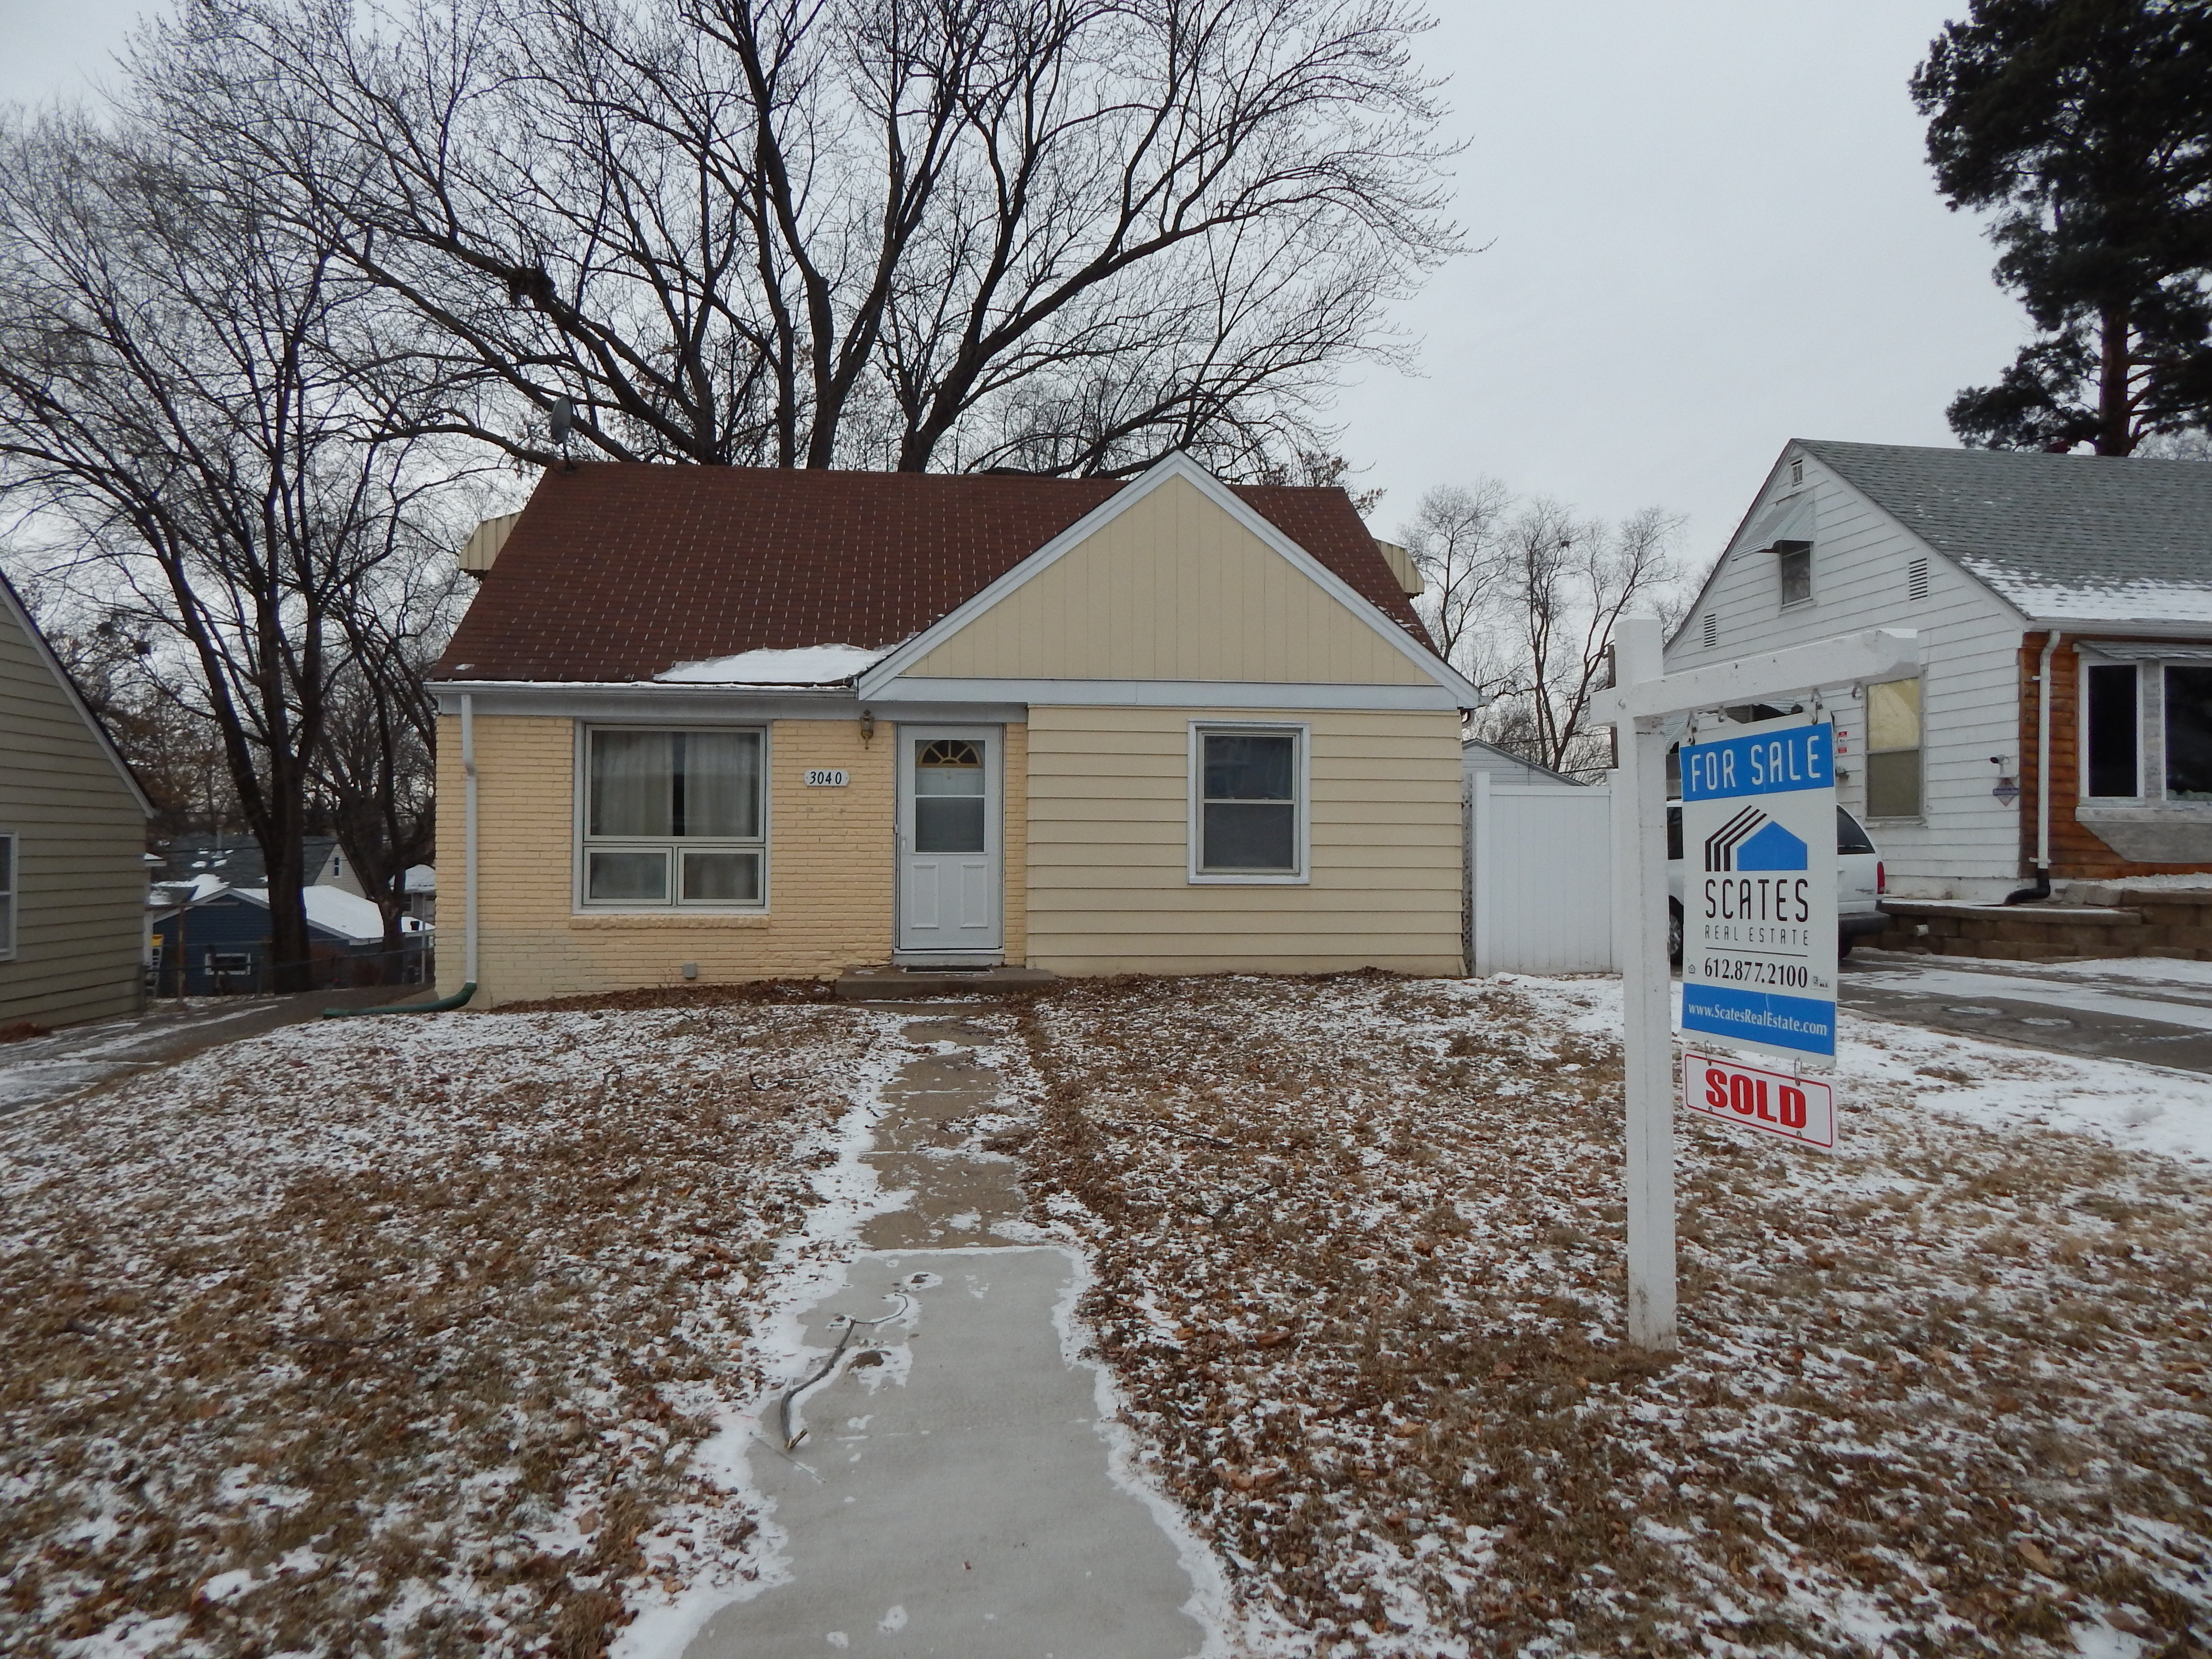 Congratulations Shereen on selling your home in St. Louis Park!